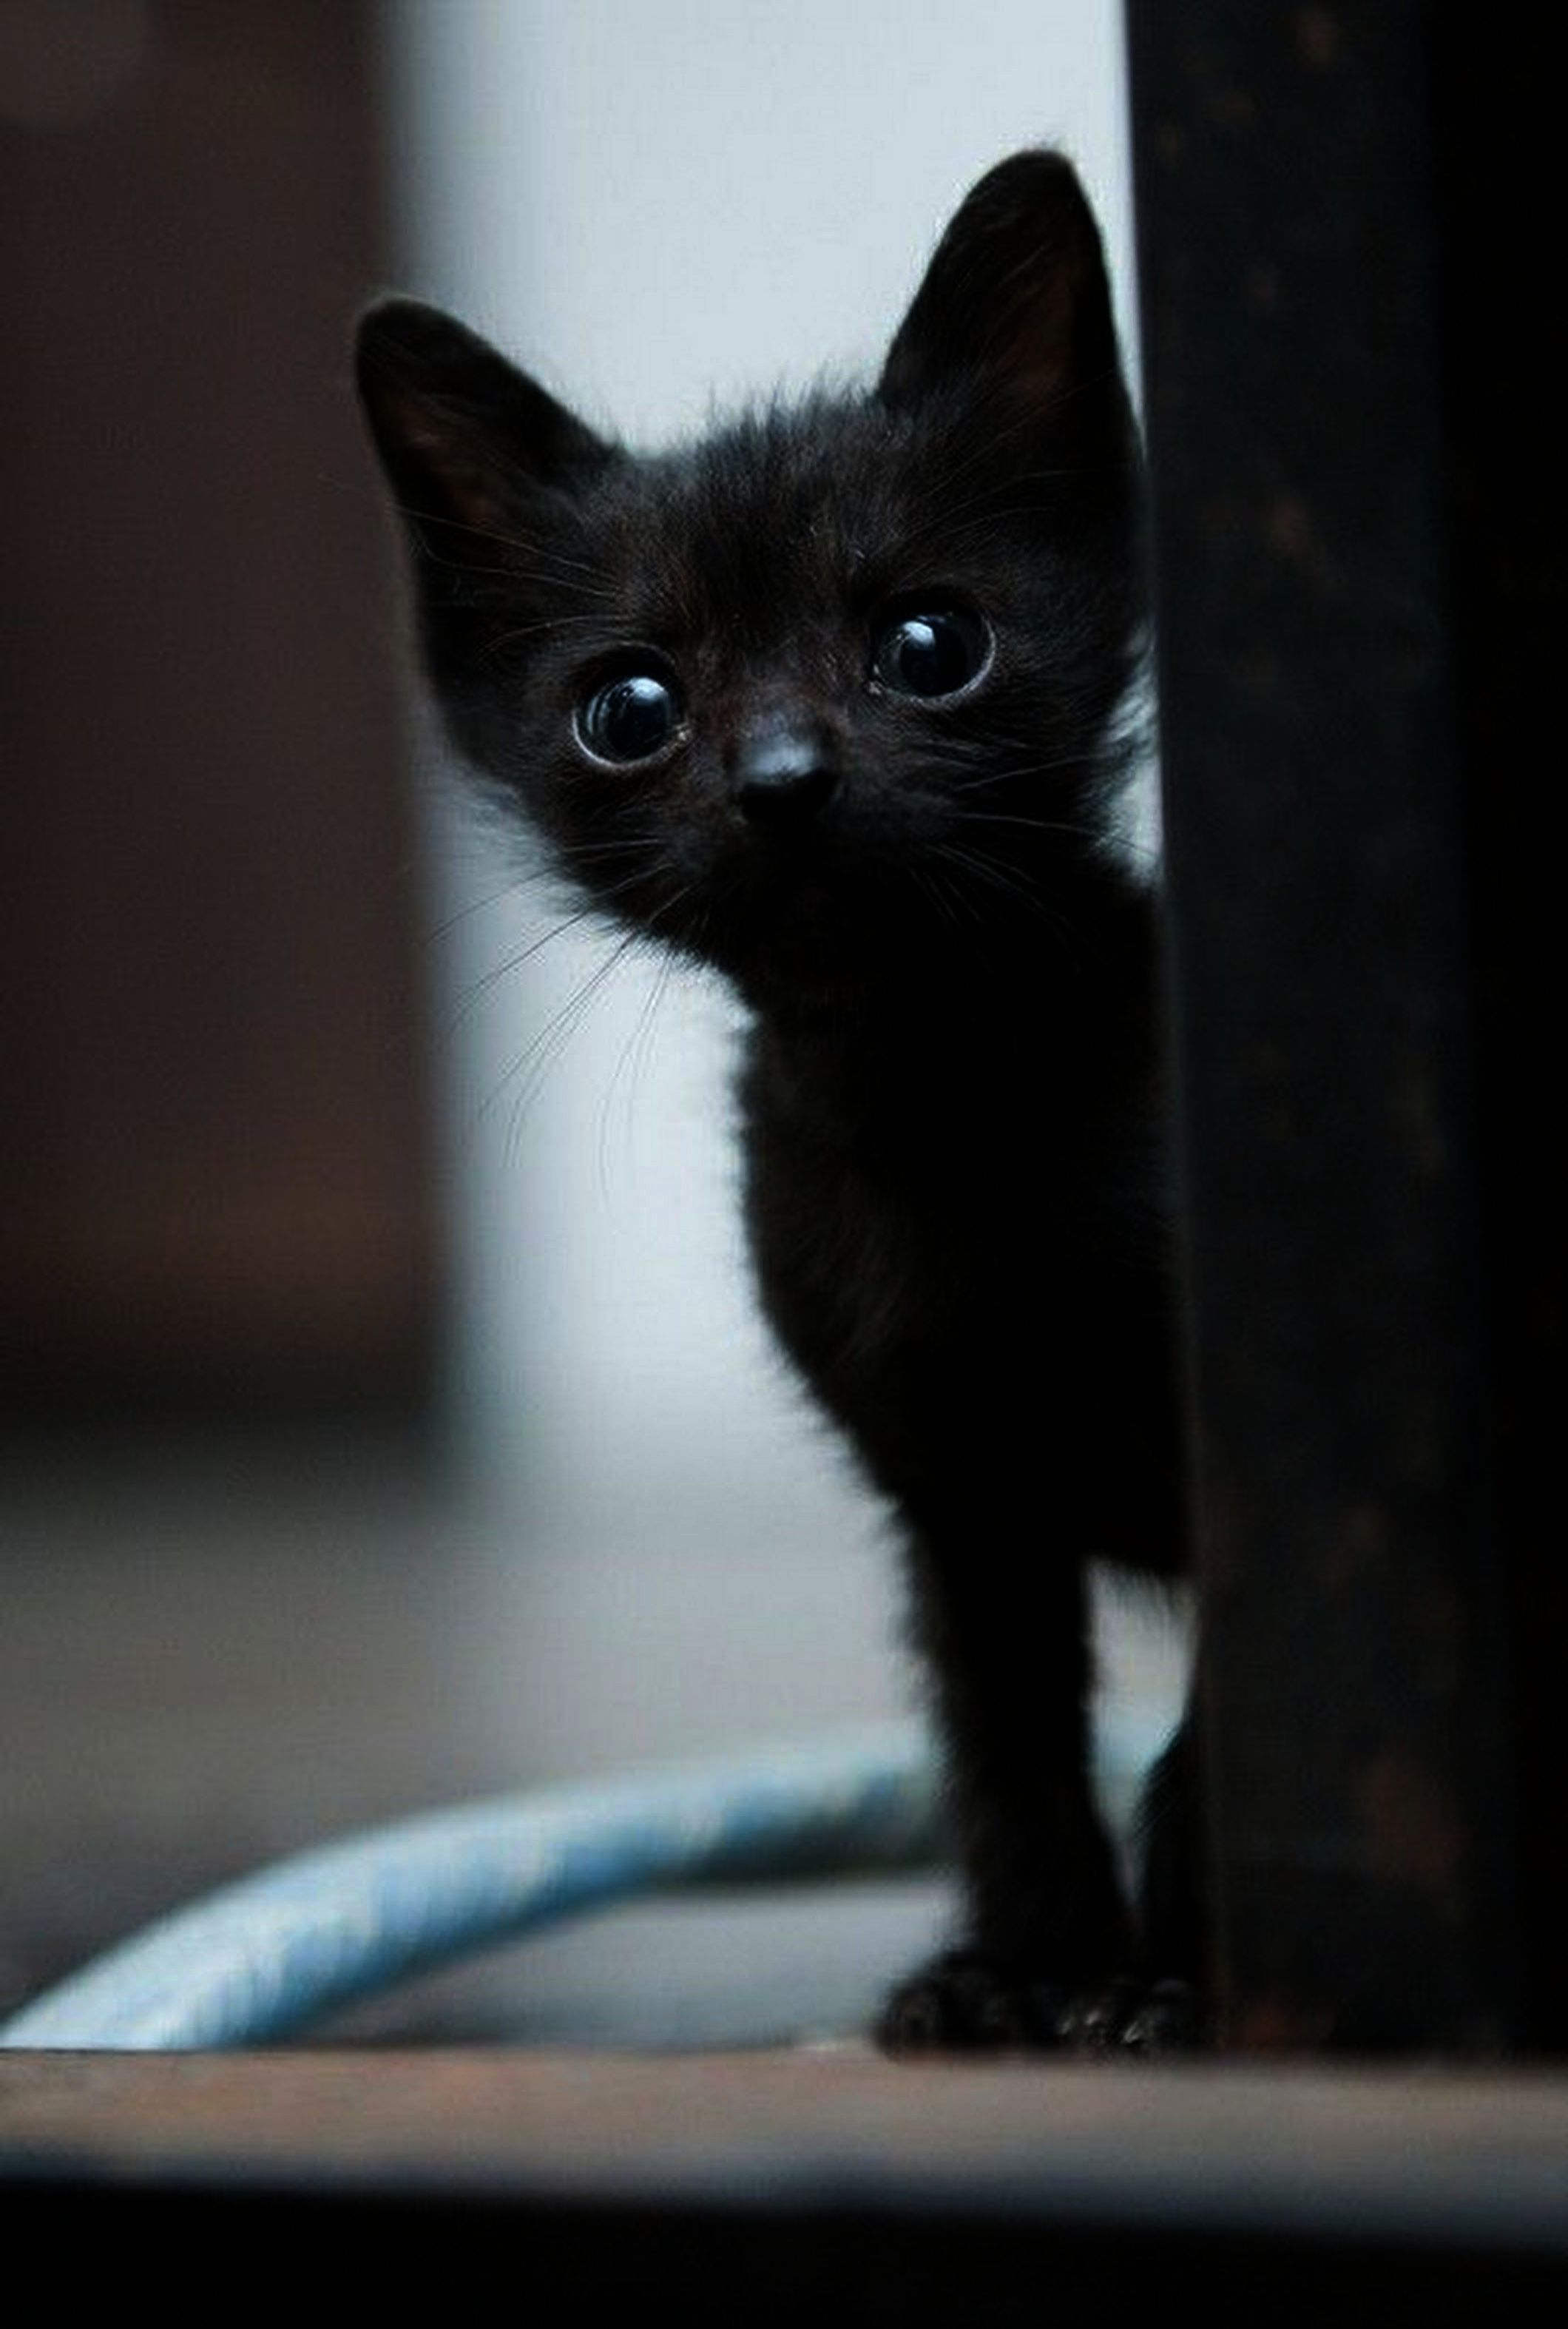 Kittens For Sale Near Me Kittens Throwing Up Kittens Cutest Cute Cats Animals Beautiful